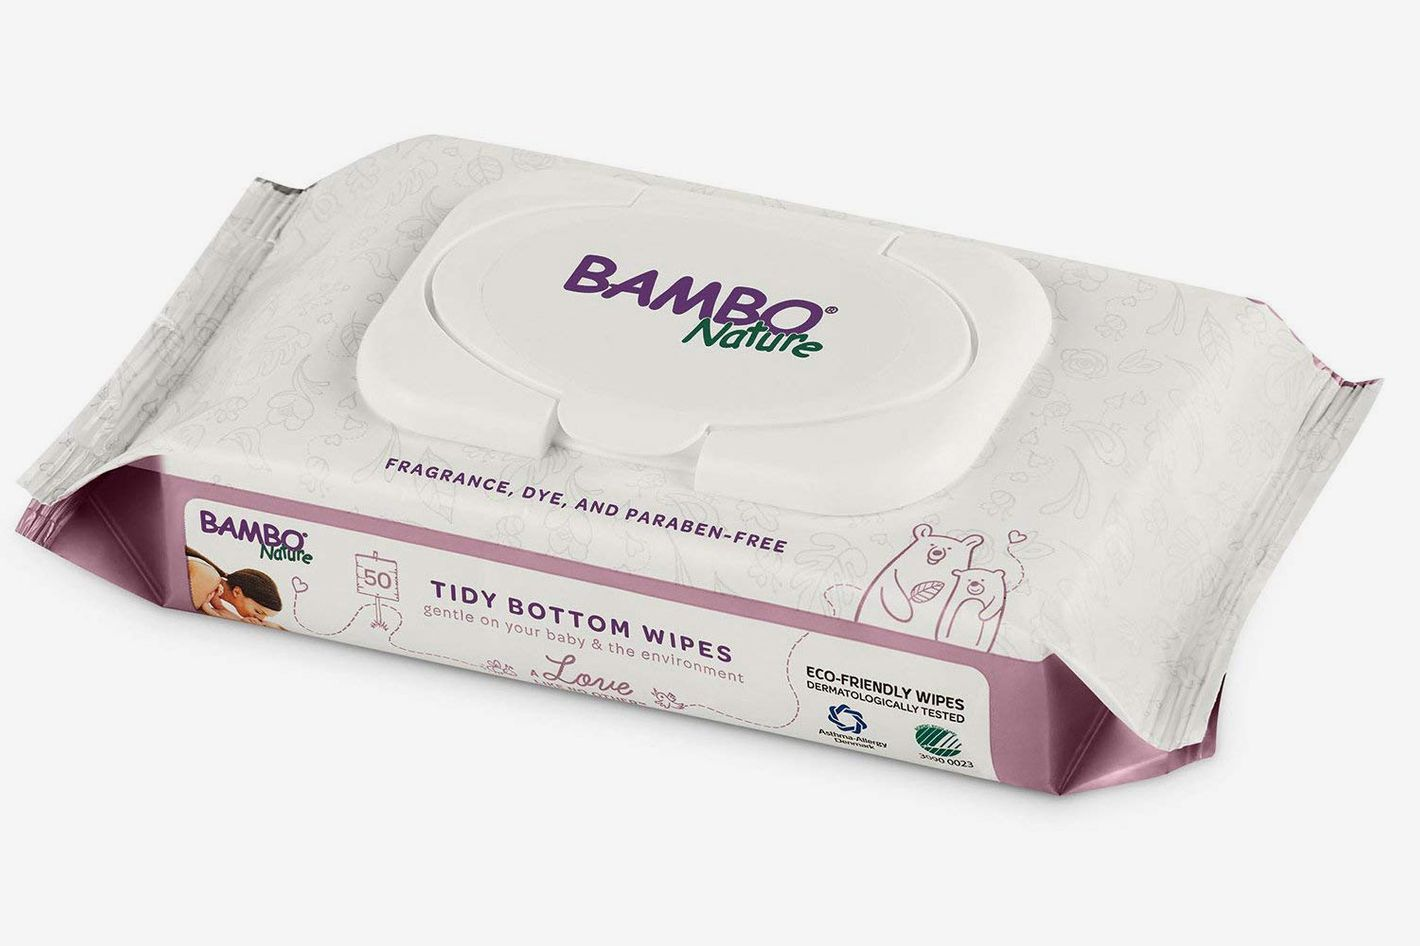 Bambo Nature Tidy Bottoms Baby Wipes